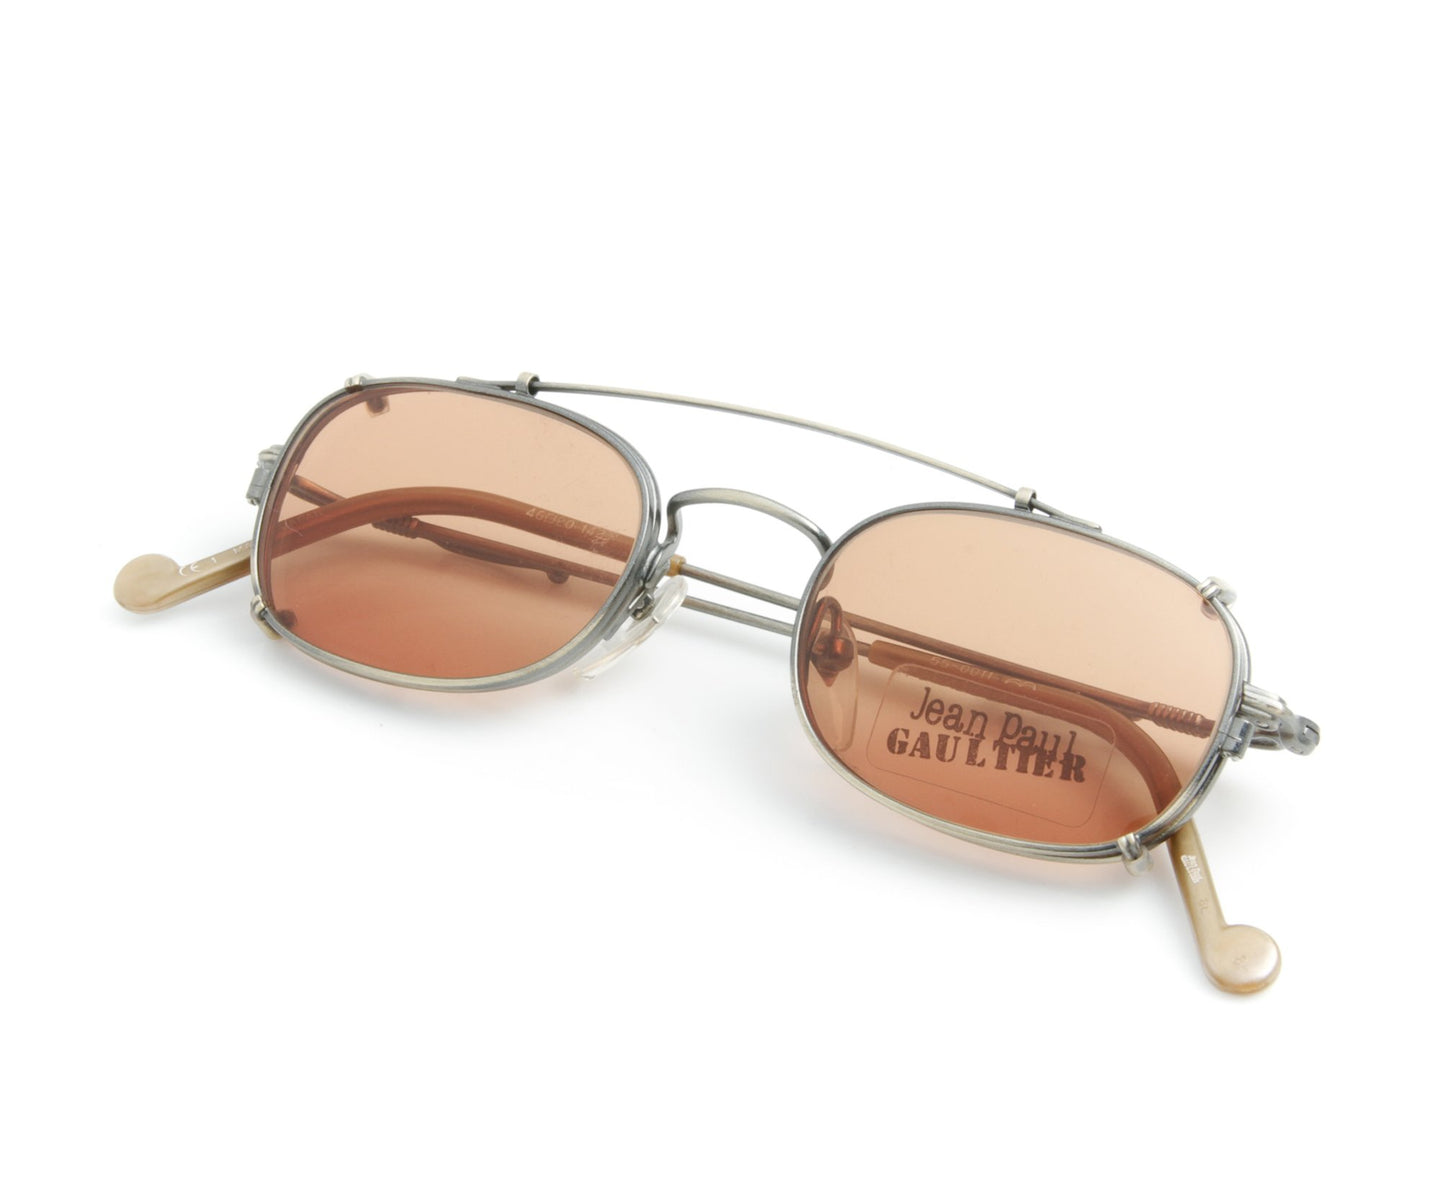 Jean Paul Gaultier 55-0011 1, Jean Paul Gaultier , glasses frames, eyeglasses online, eyeglass frames, mens glasses, womens glasses, buy glasses online, designer eyeglasses, vintage sunglasses, retro sunglasses, vintage glasses, sunglass, eyeglass, glasses, lens, vintage frames company, vf